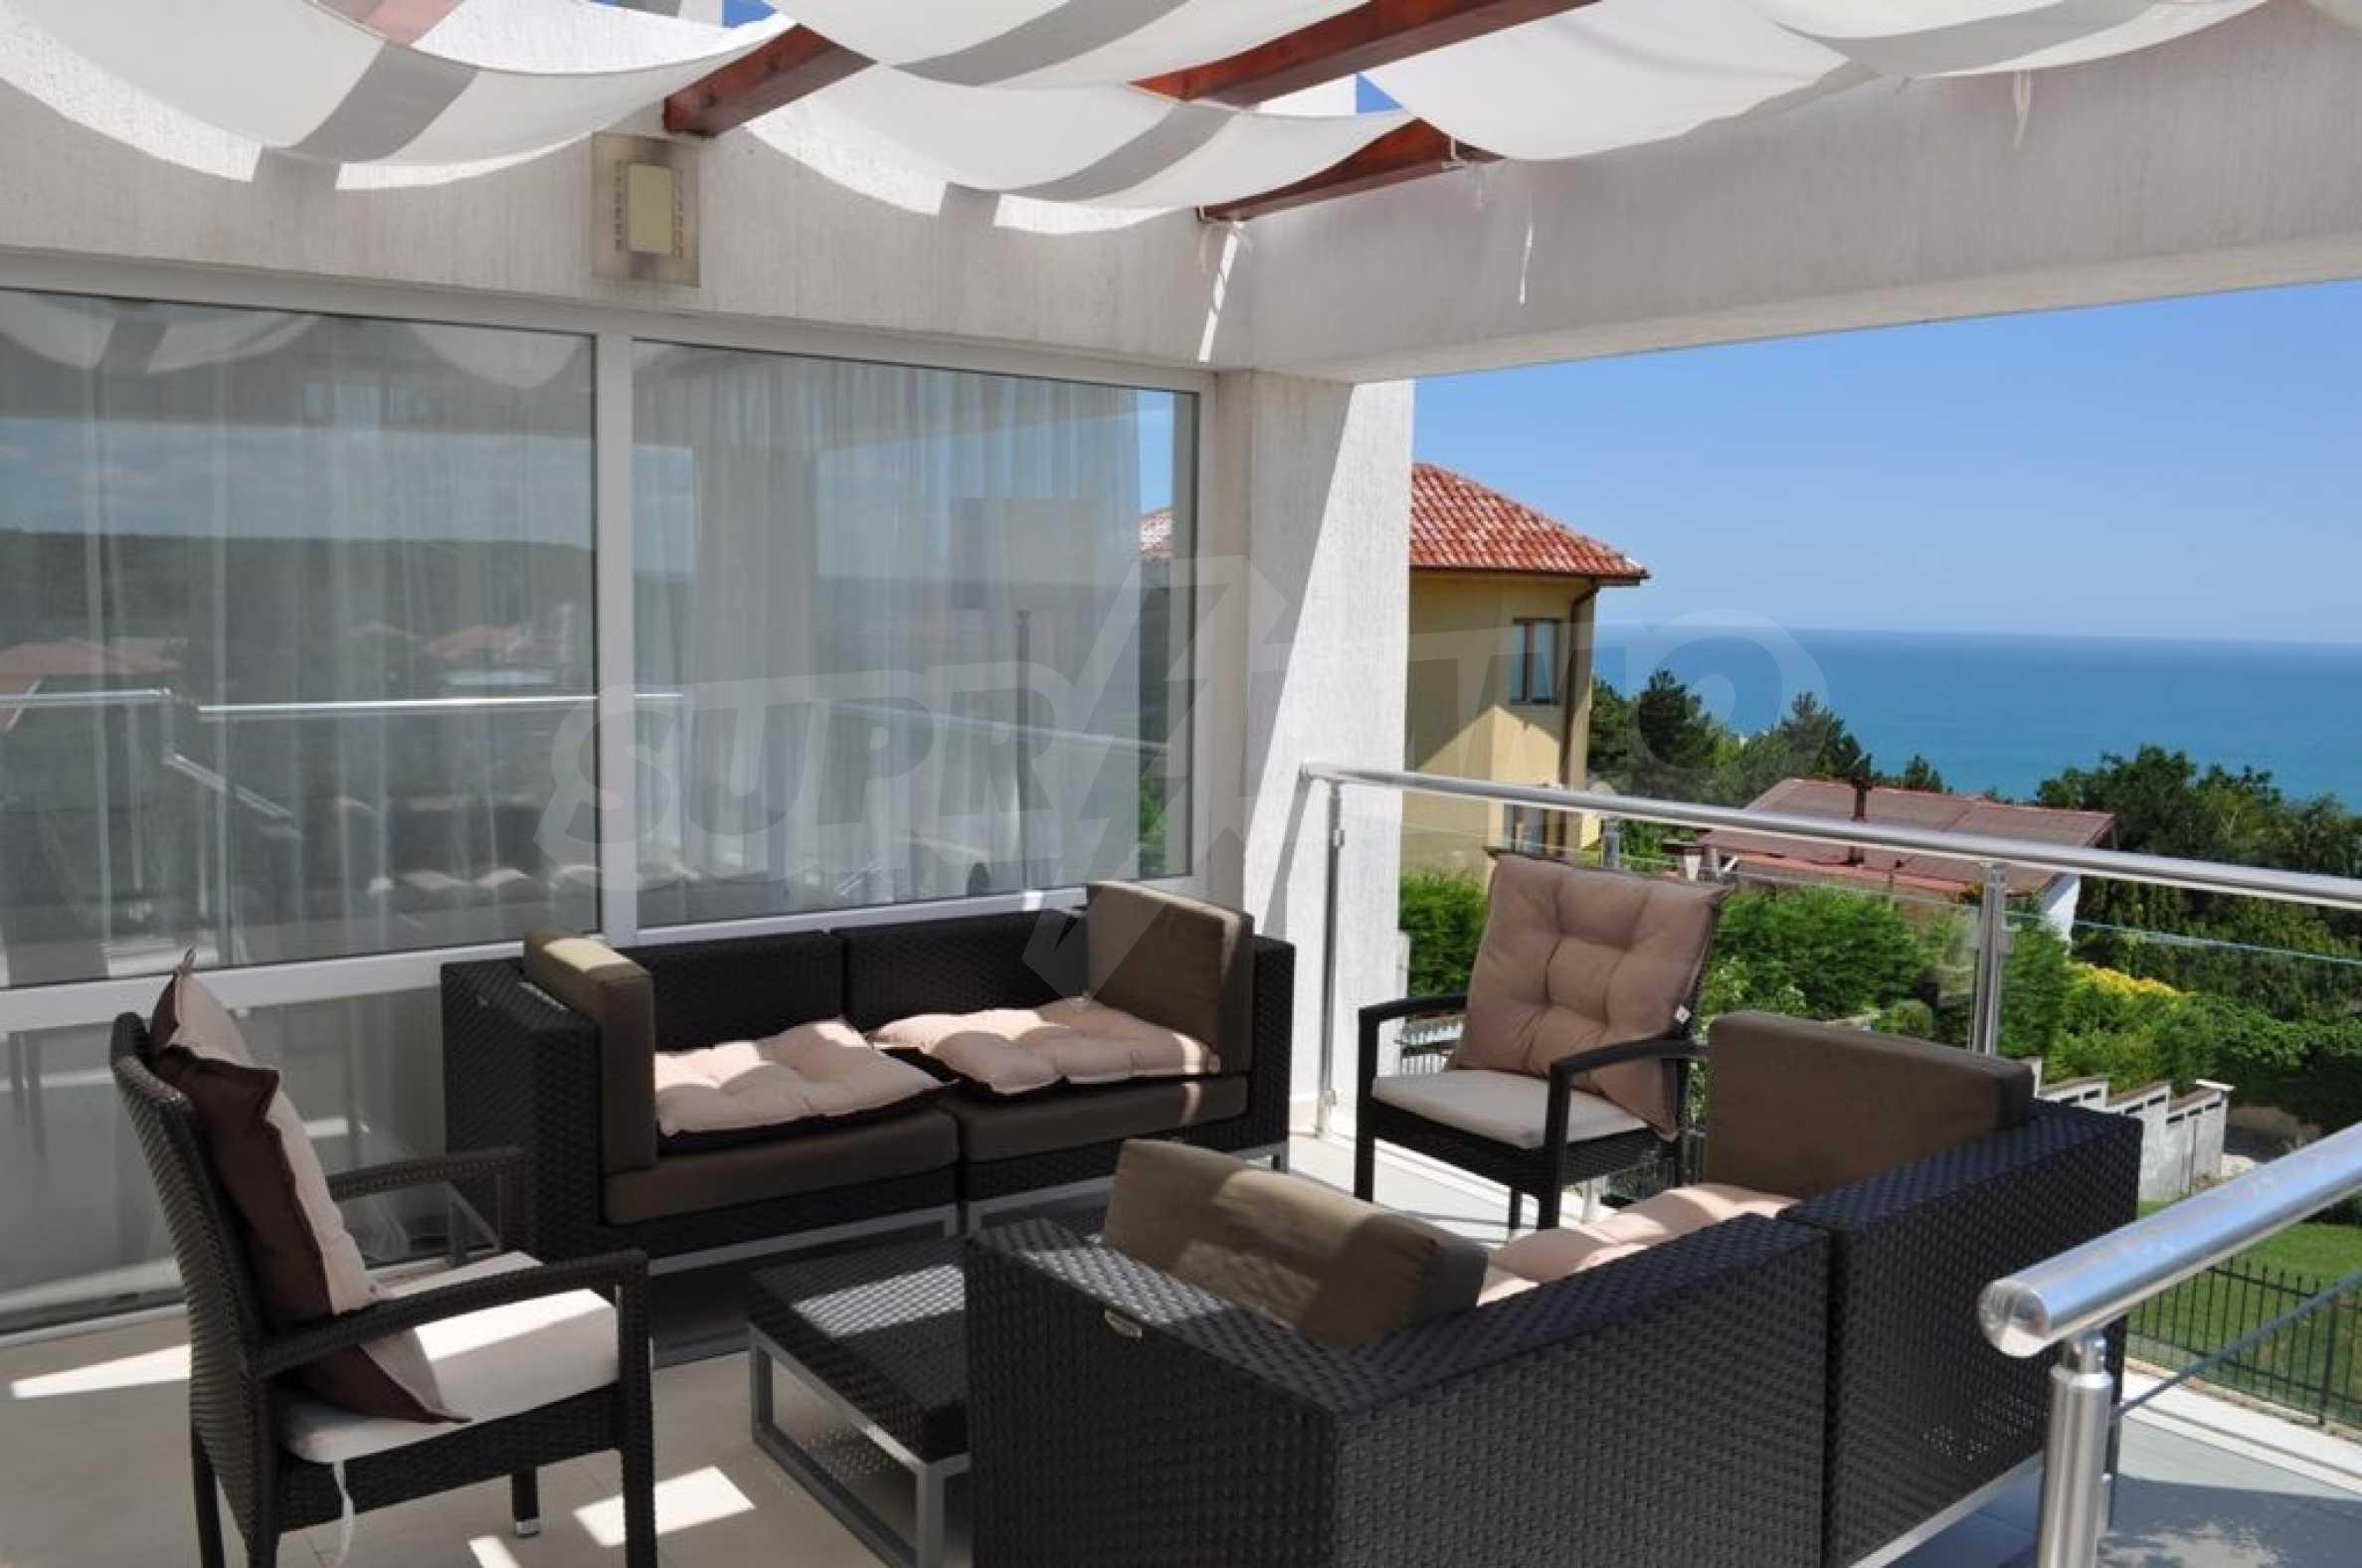 Luxury villa with 4 bedrooms for rent in Albena area  24